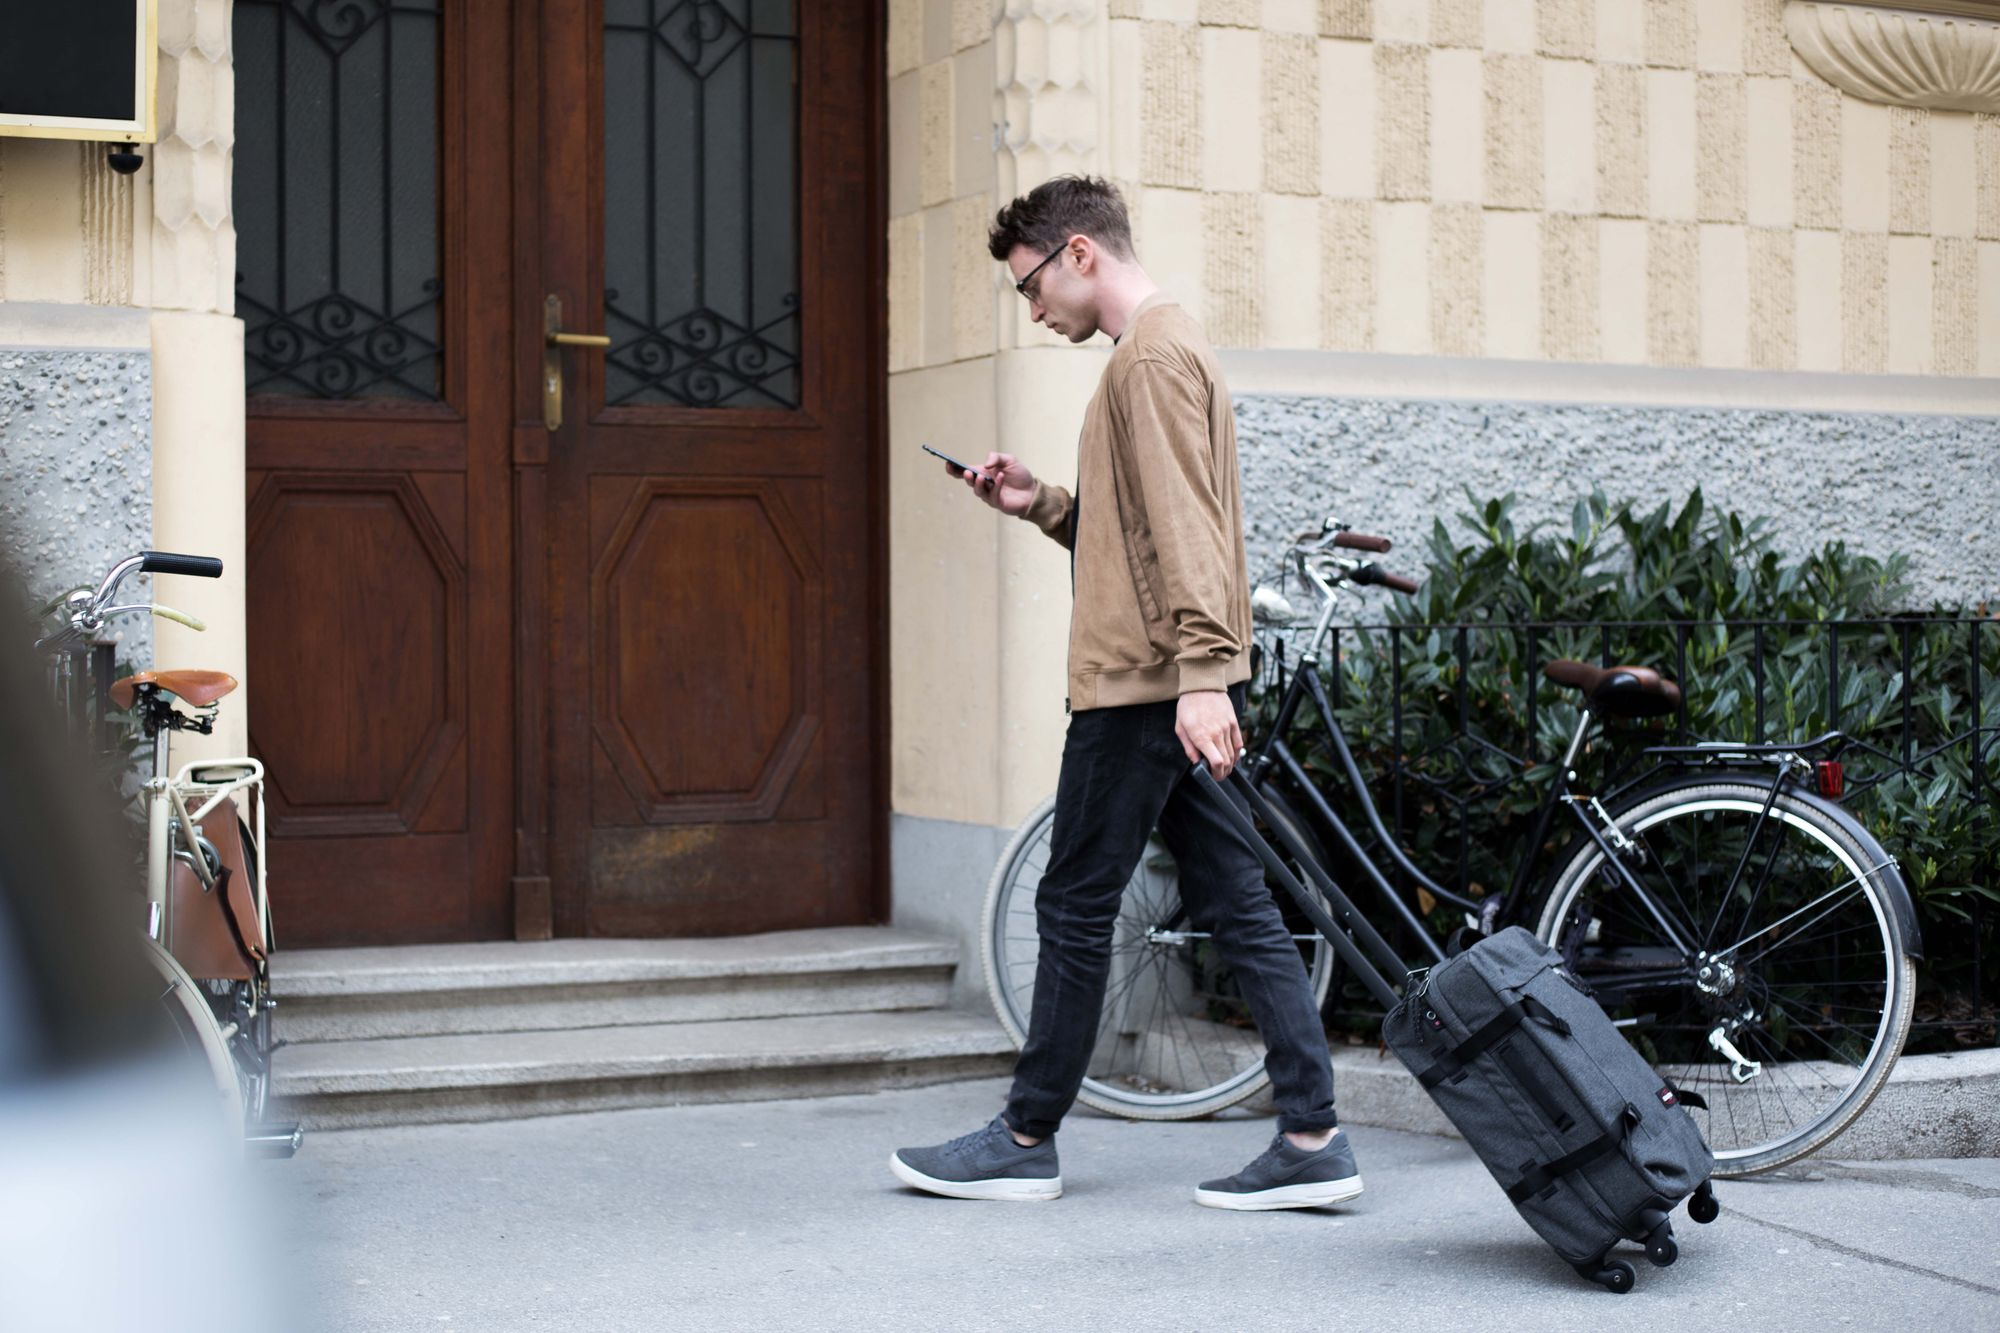 Man-outside-apartment-with-suitcase